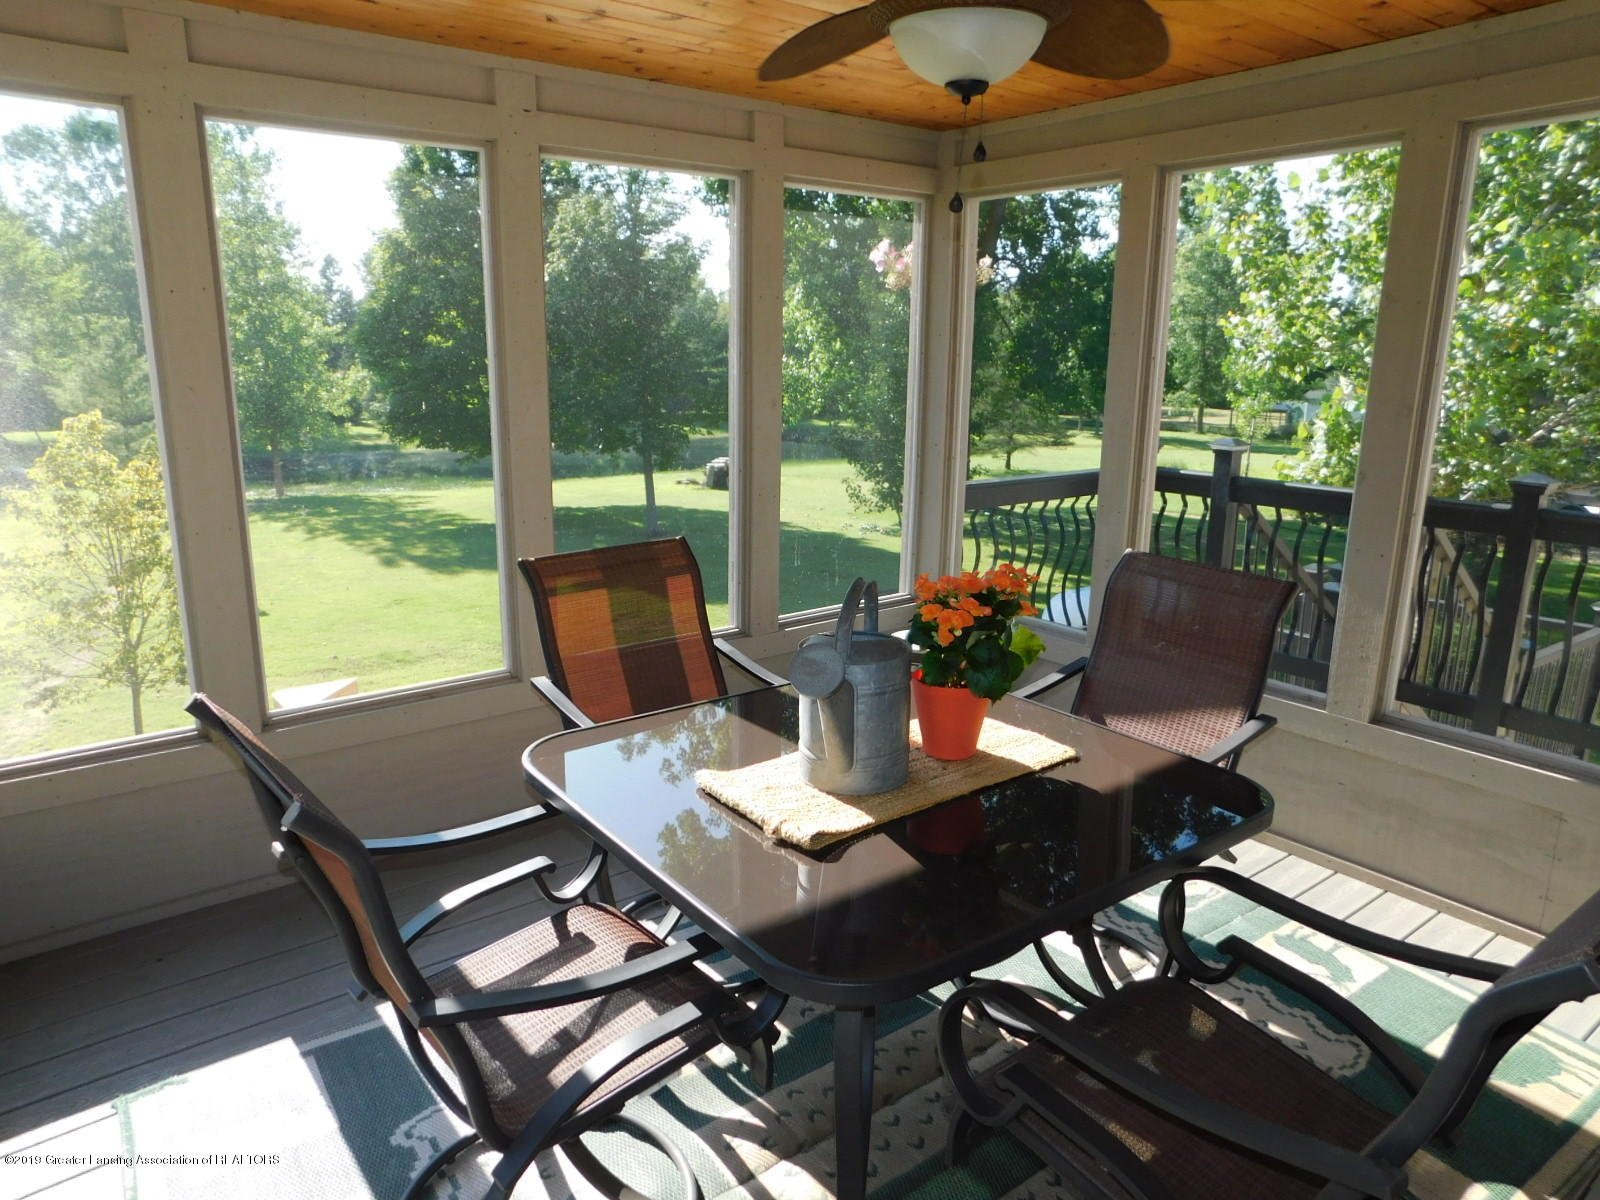 4998 State Rd - screen porch - 17